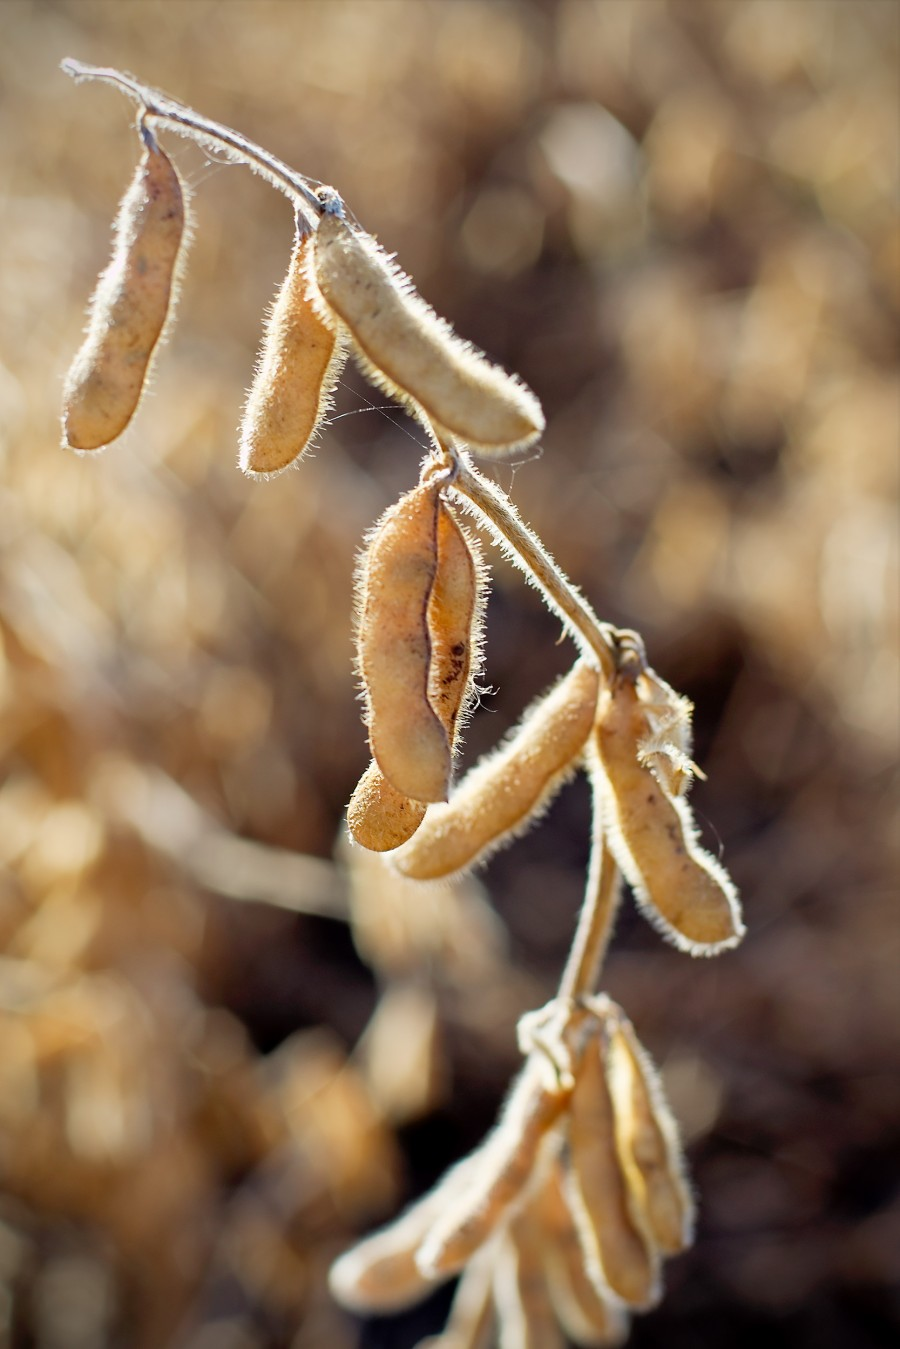 Soybeans are also a major GM crop, and also used in a wide variety of processed foods. Photo by Philip Dean on flickr